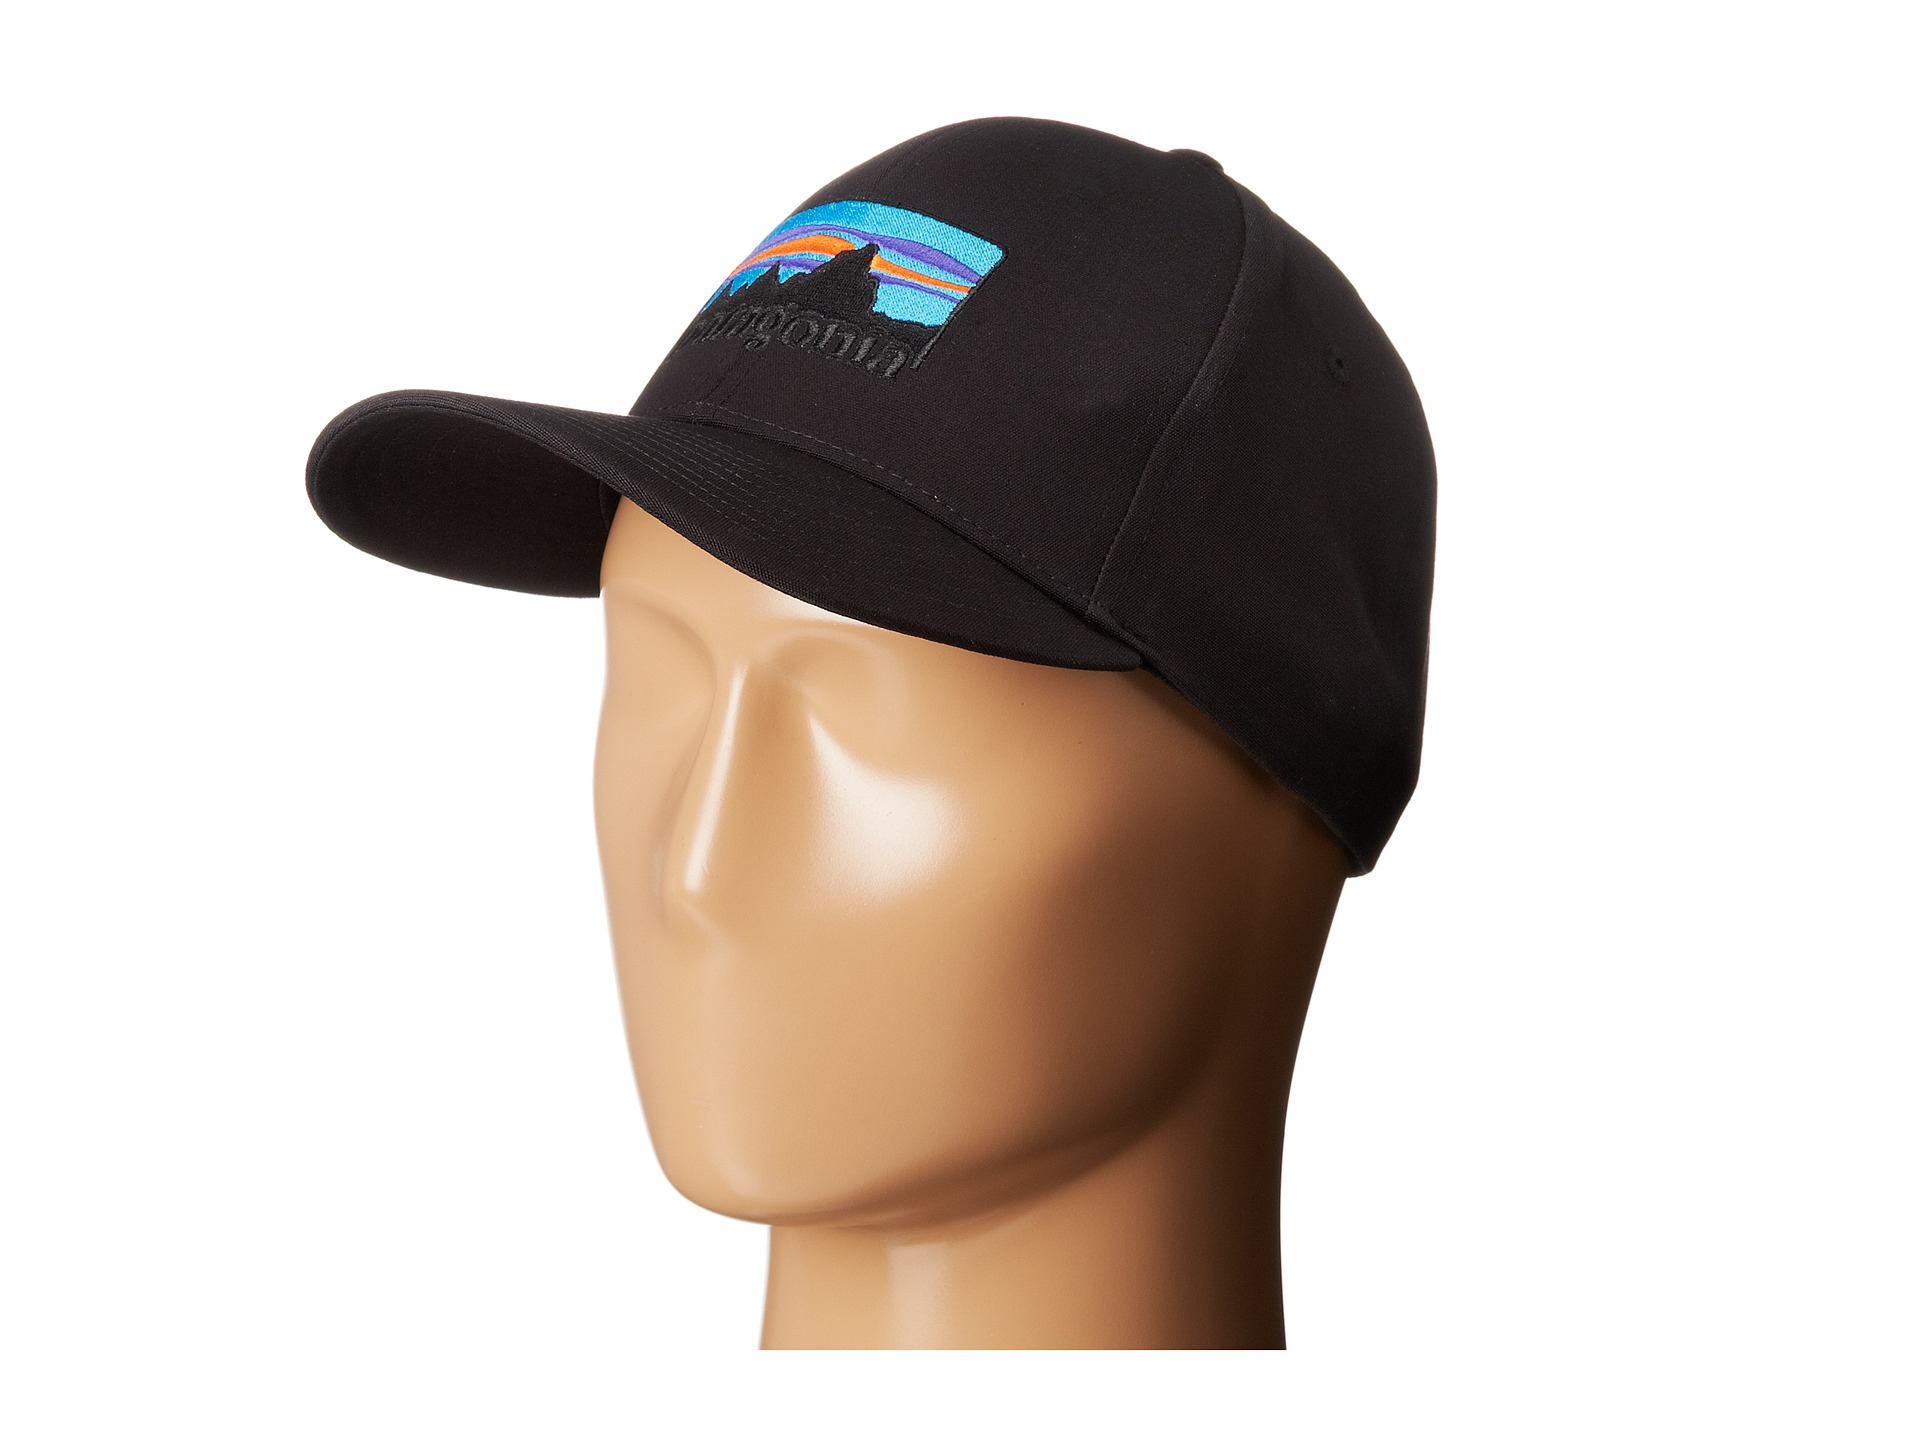 Lyst - Patagonia 73 Logo Roger That Hat in Black dce397b0e85